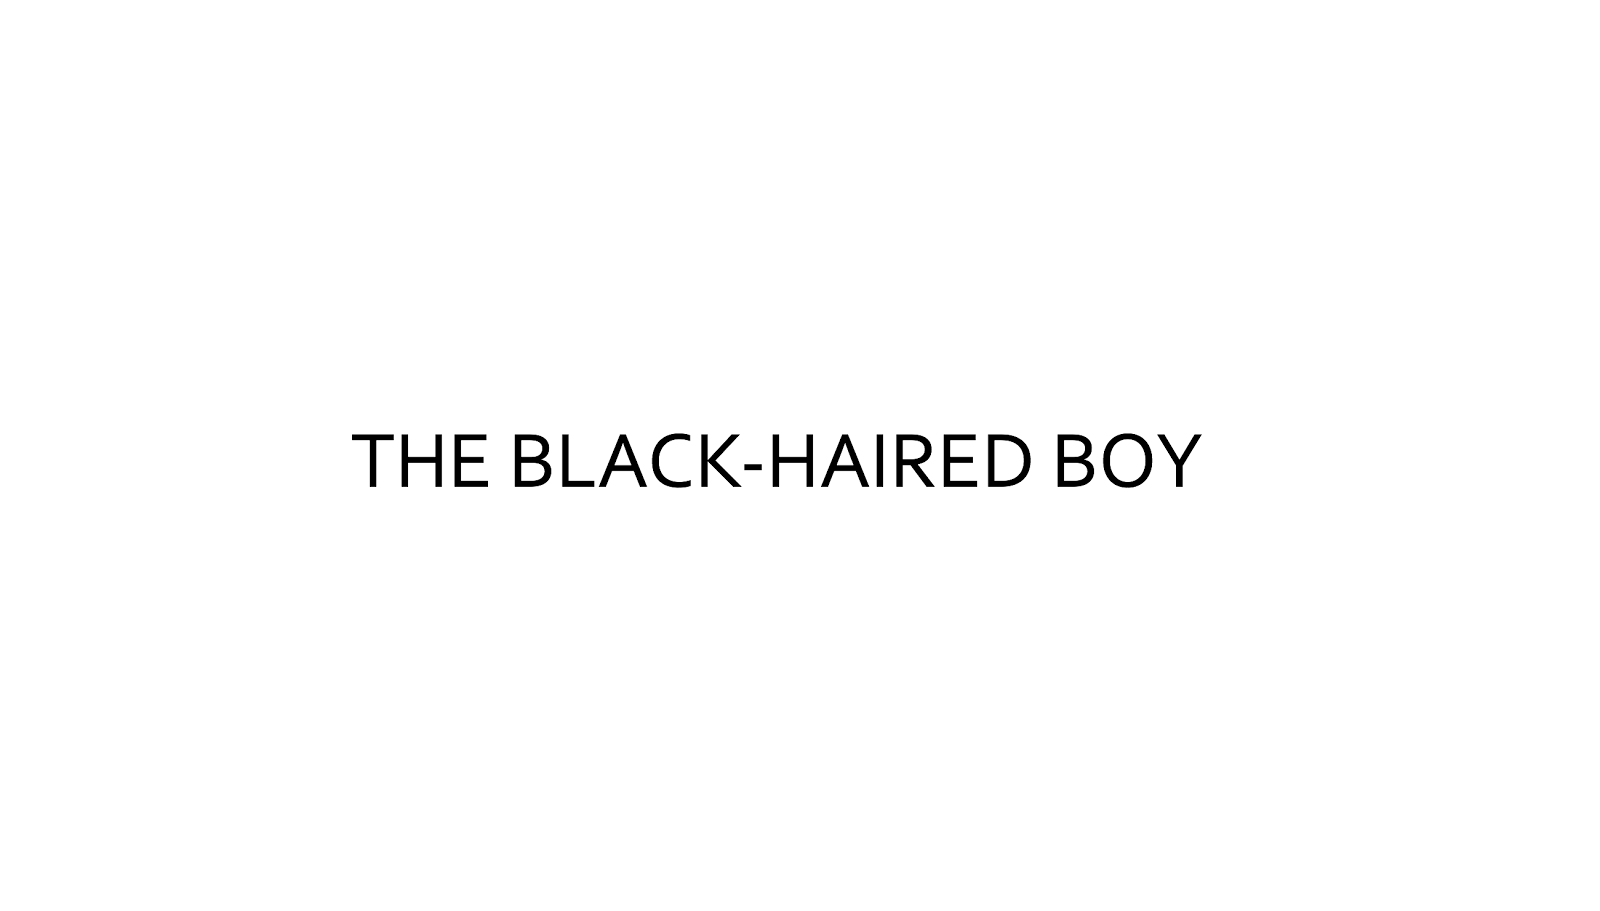 The Black-Haired Boy